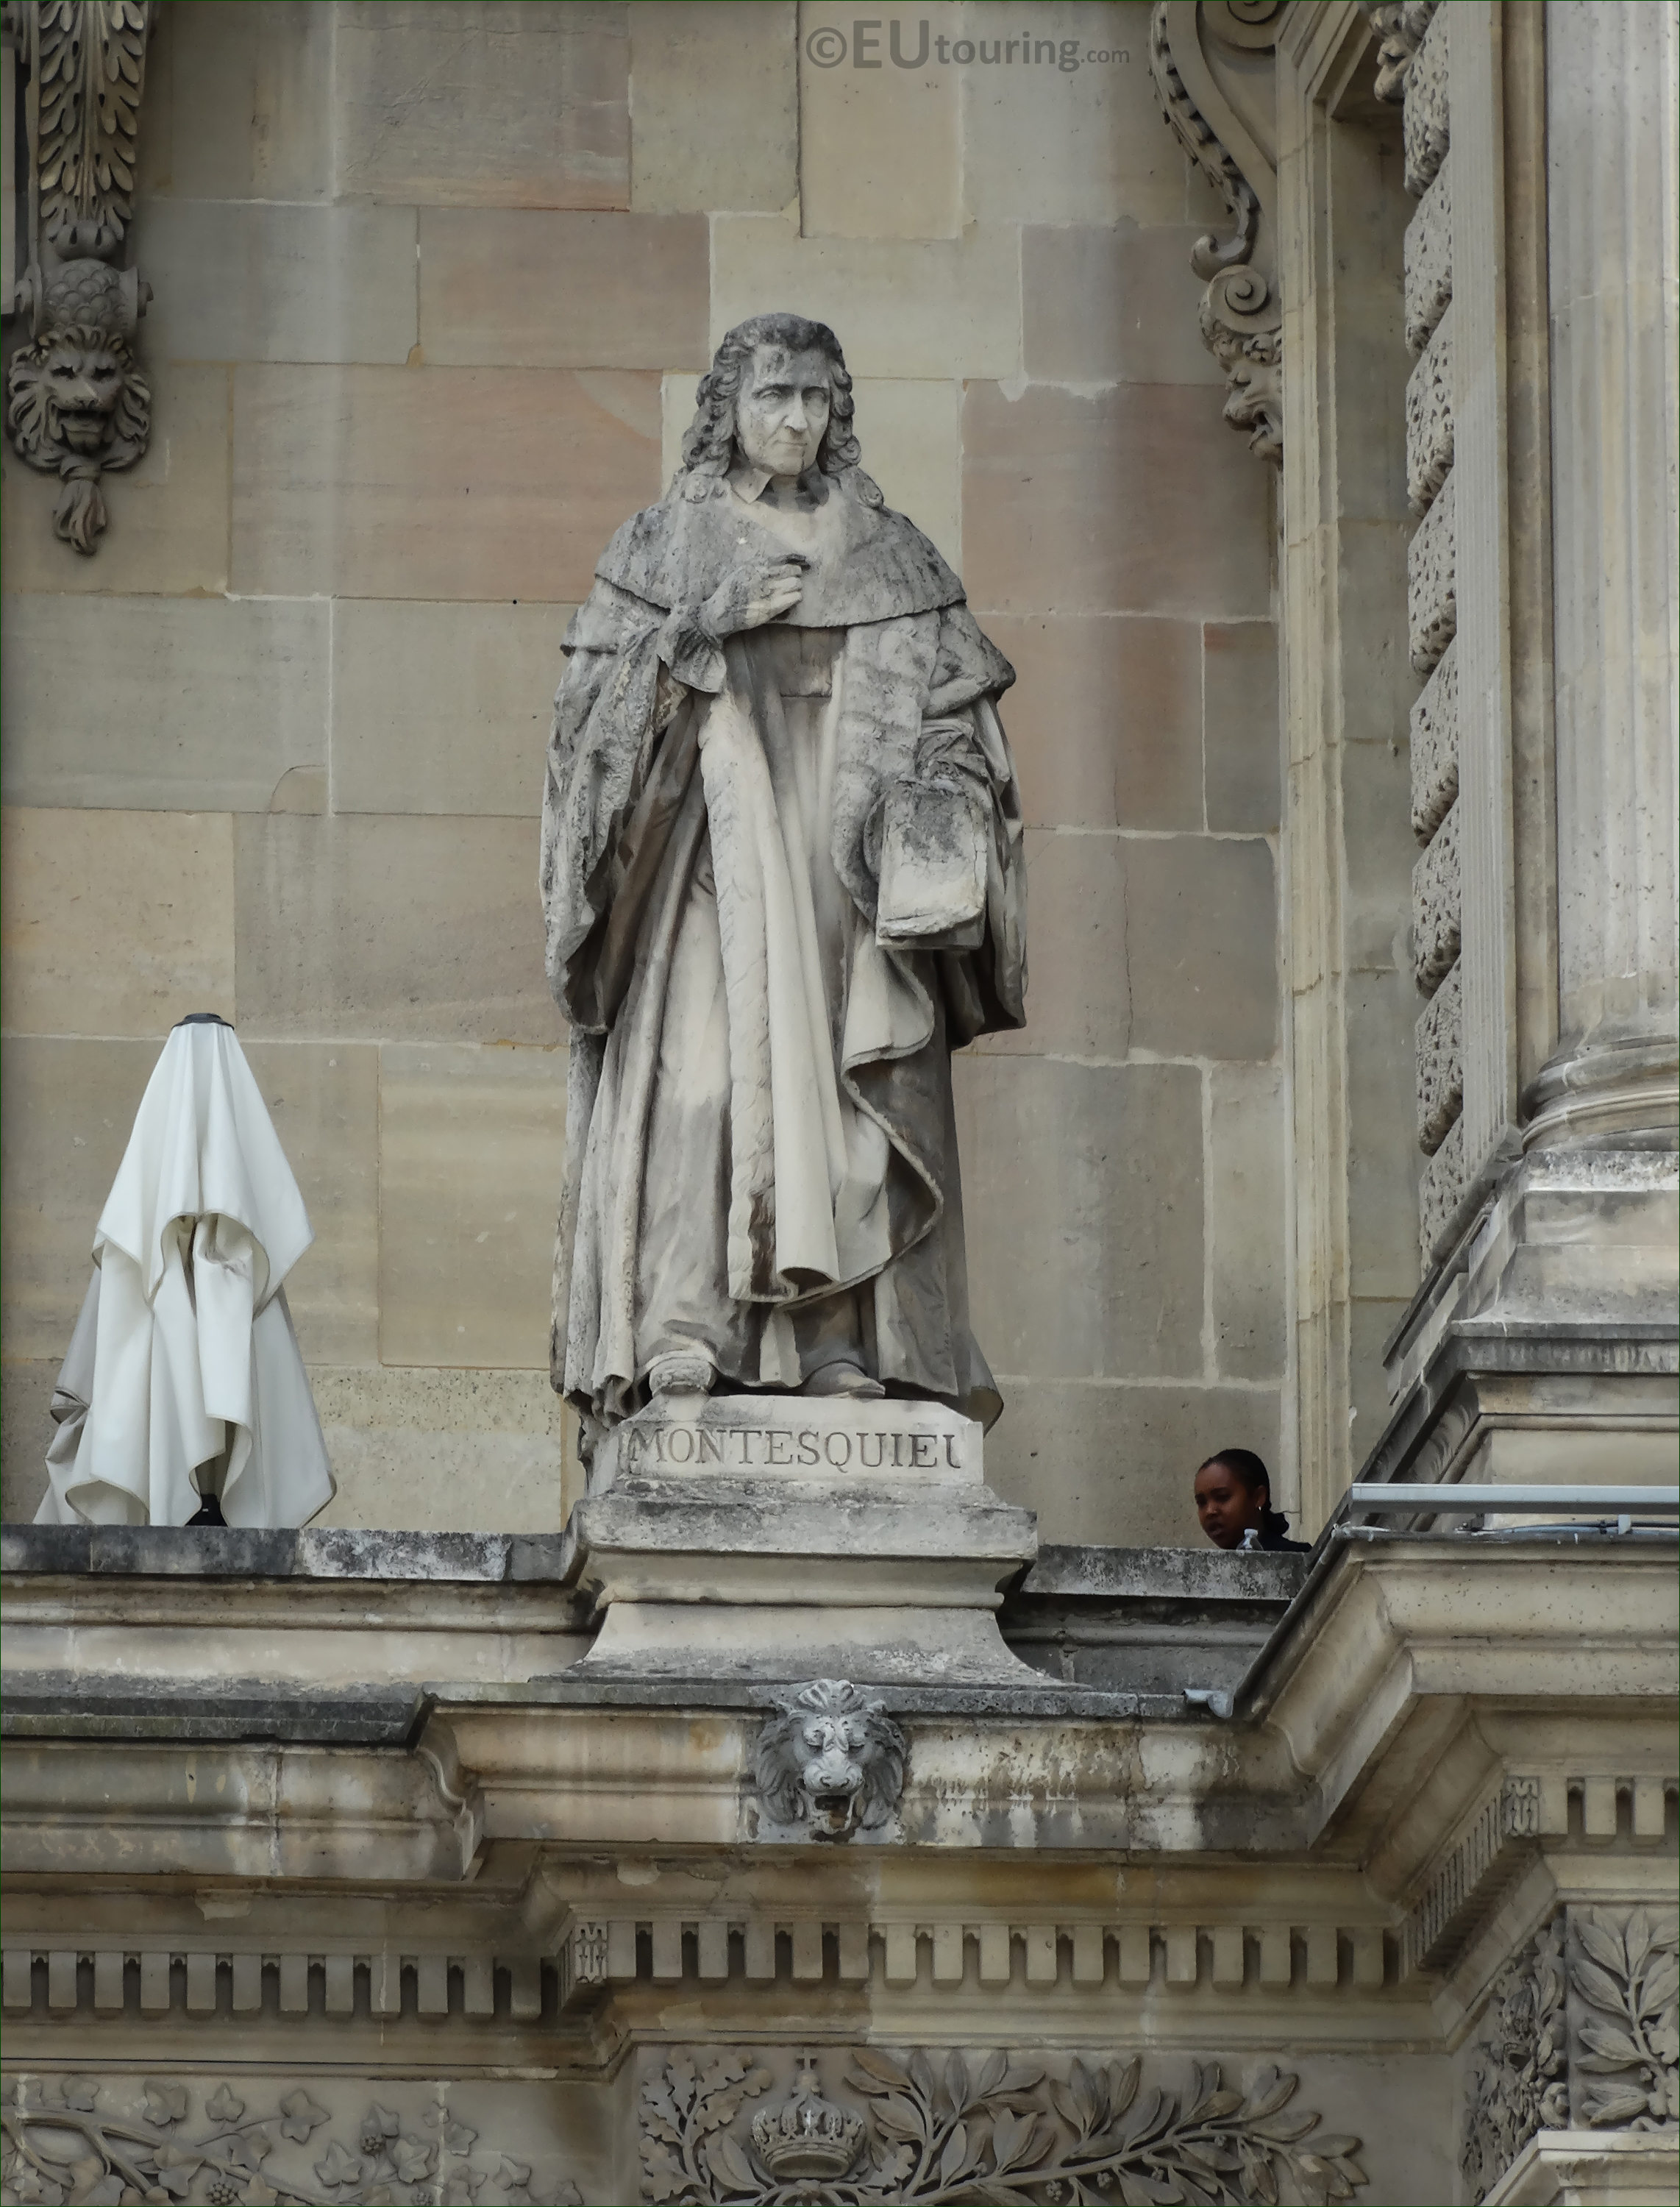 Photos of Montesquieu statue at Musee du Louvre - Page 360